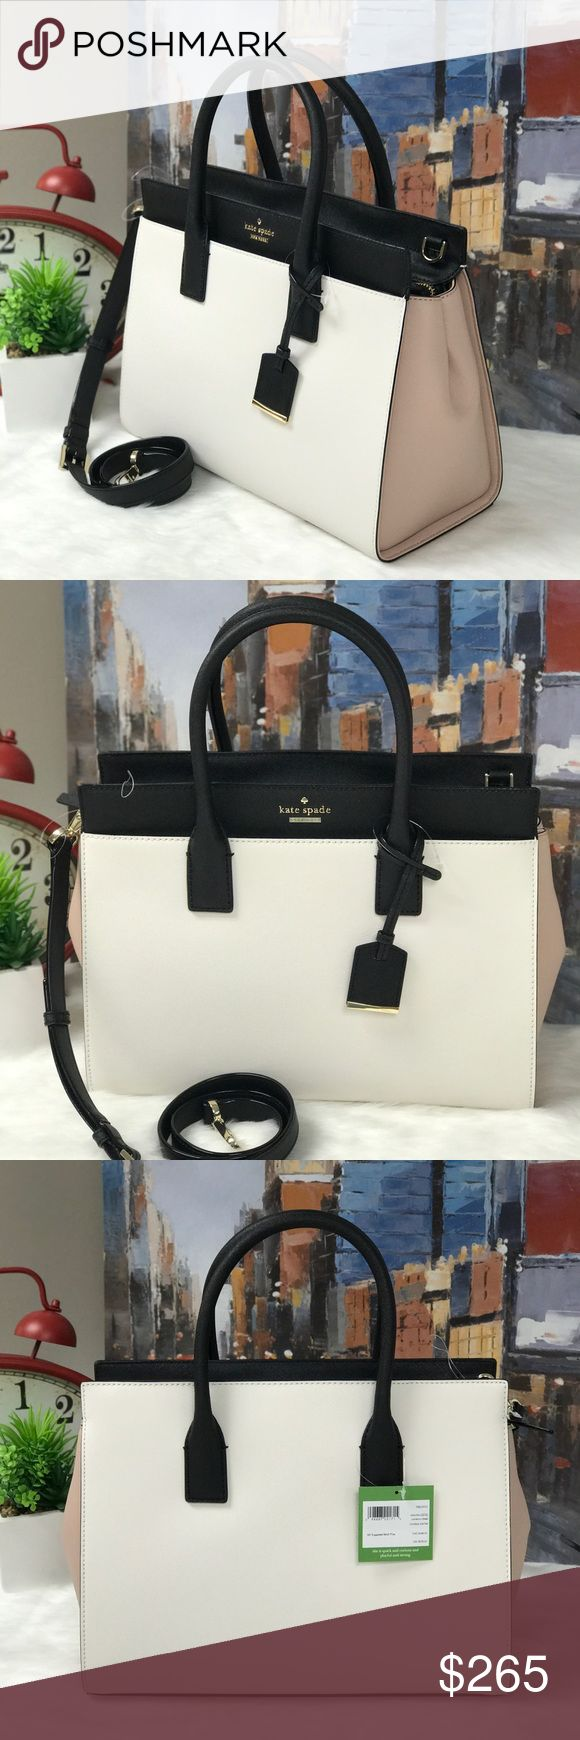 ‼️MARKDOWN‼️ Cameron Street Large Candace ♥️This Satchel is super elegant and always in style. The material is easy to clean and you have all the spaces you need for all your stuff. kate spade Bags Satchels